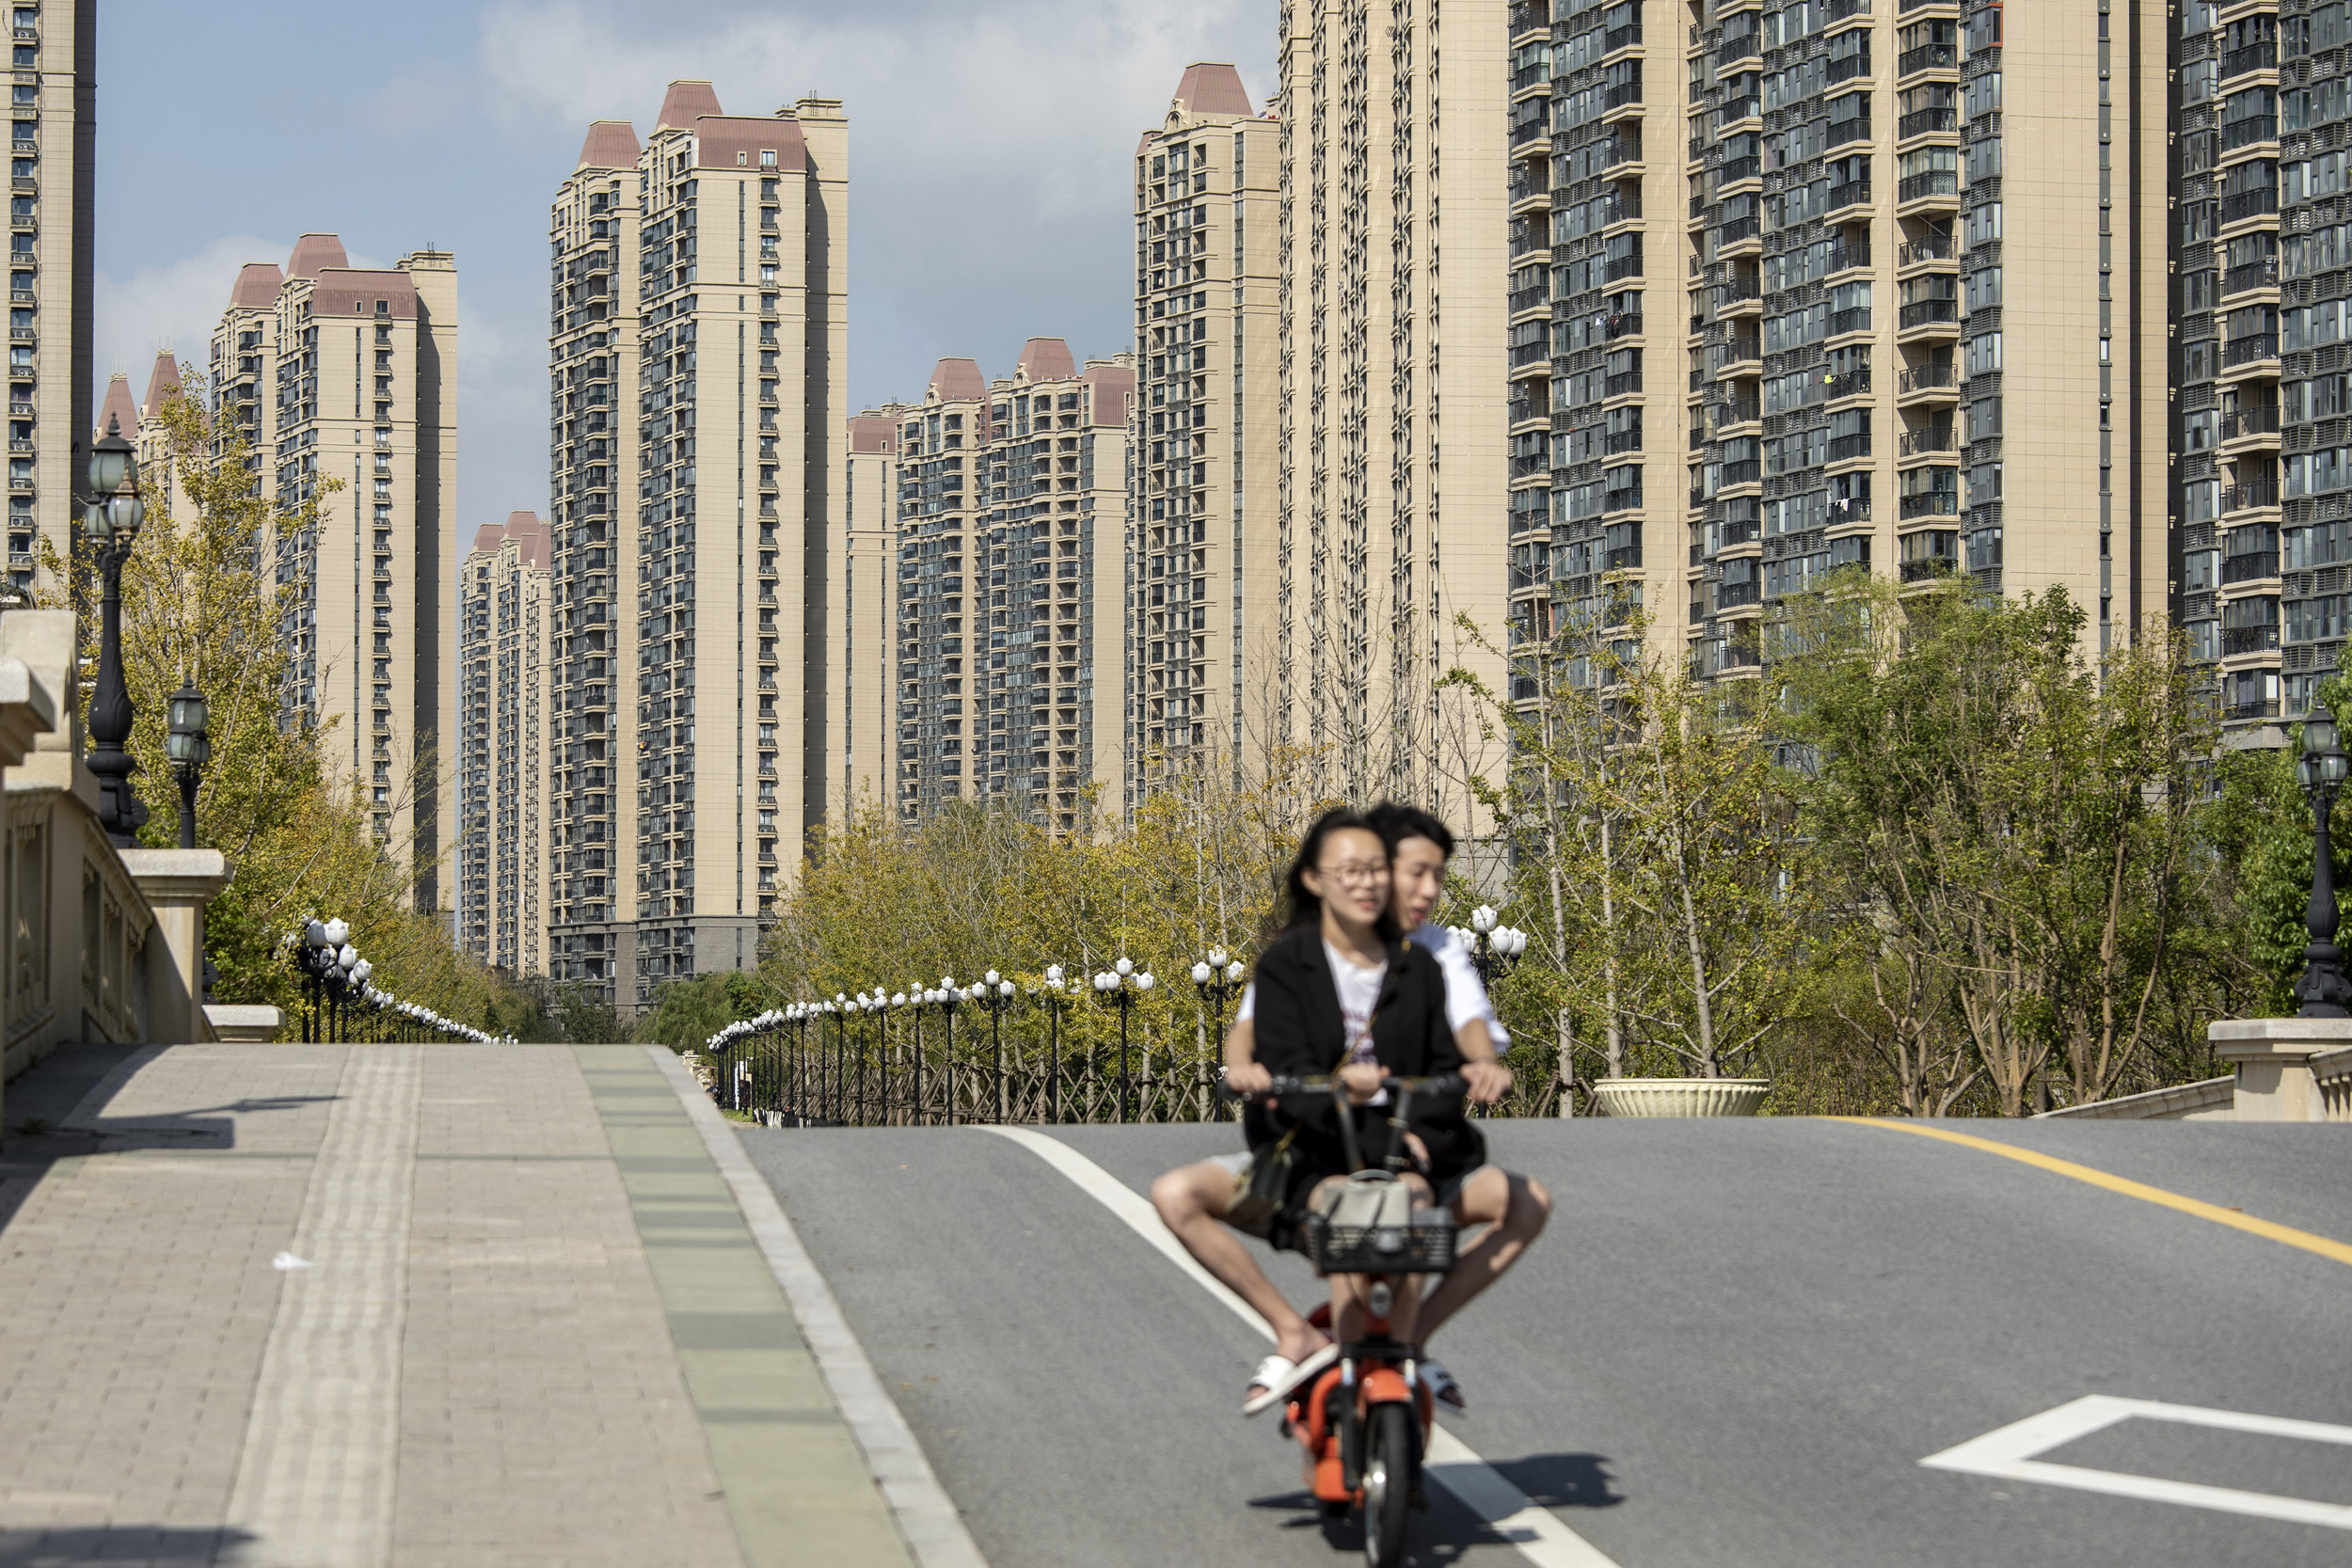 A property giant in China is on the brink of collapse. The government might let it fail.